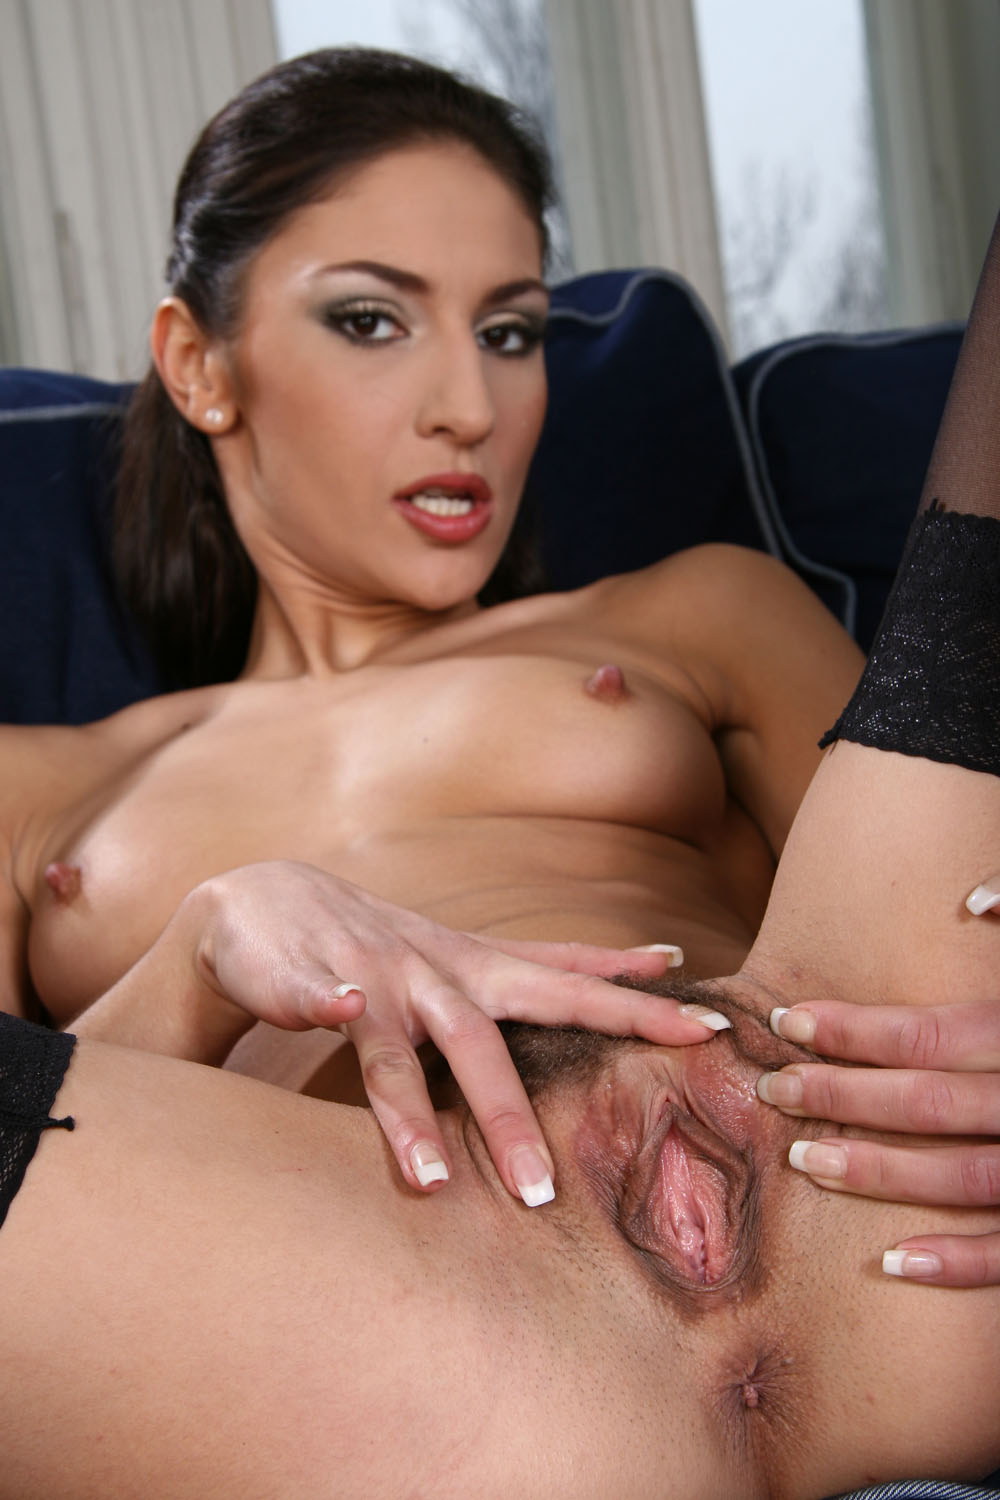 victoria-rose pussy Kitty Saliery & Victoria Rose - Free Porn Pictures from Her First Lesbian  Sex, First Time Lesbian Porn, Pink Visual